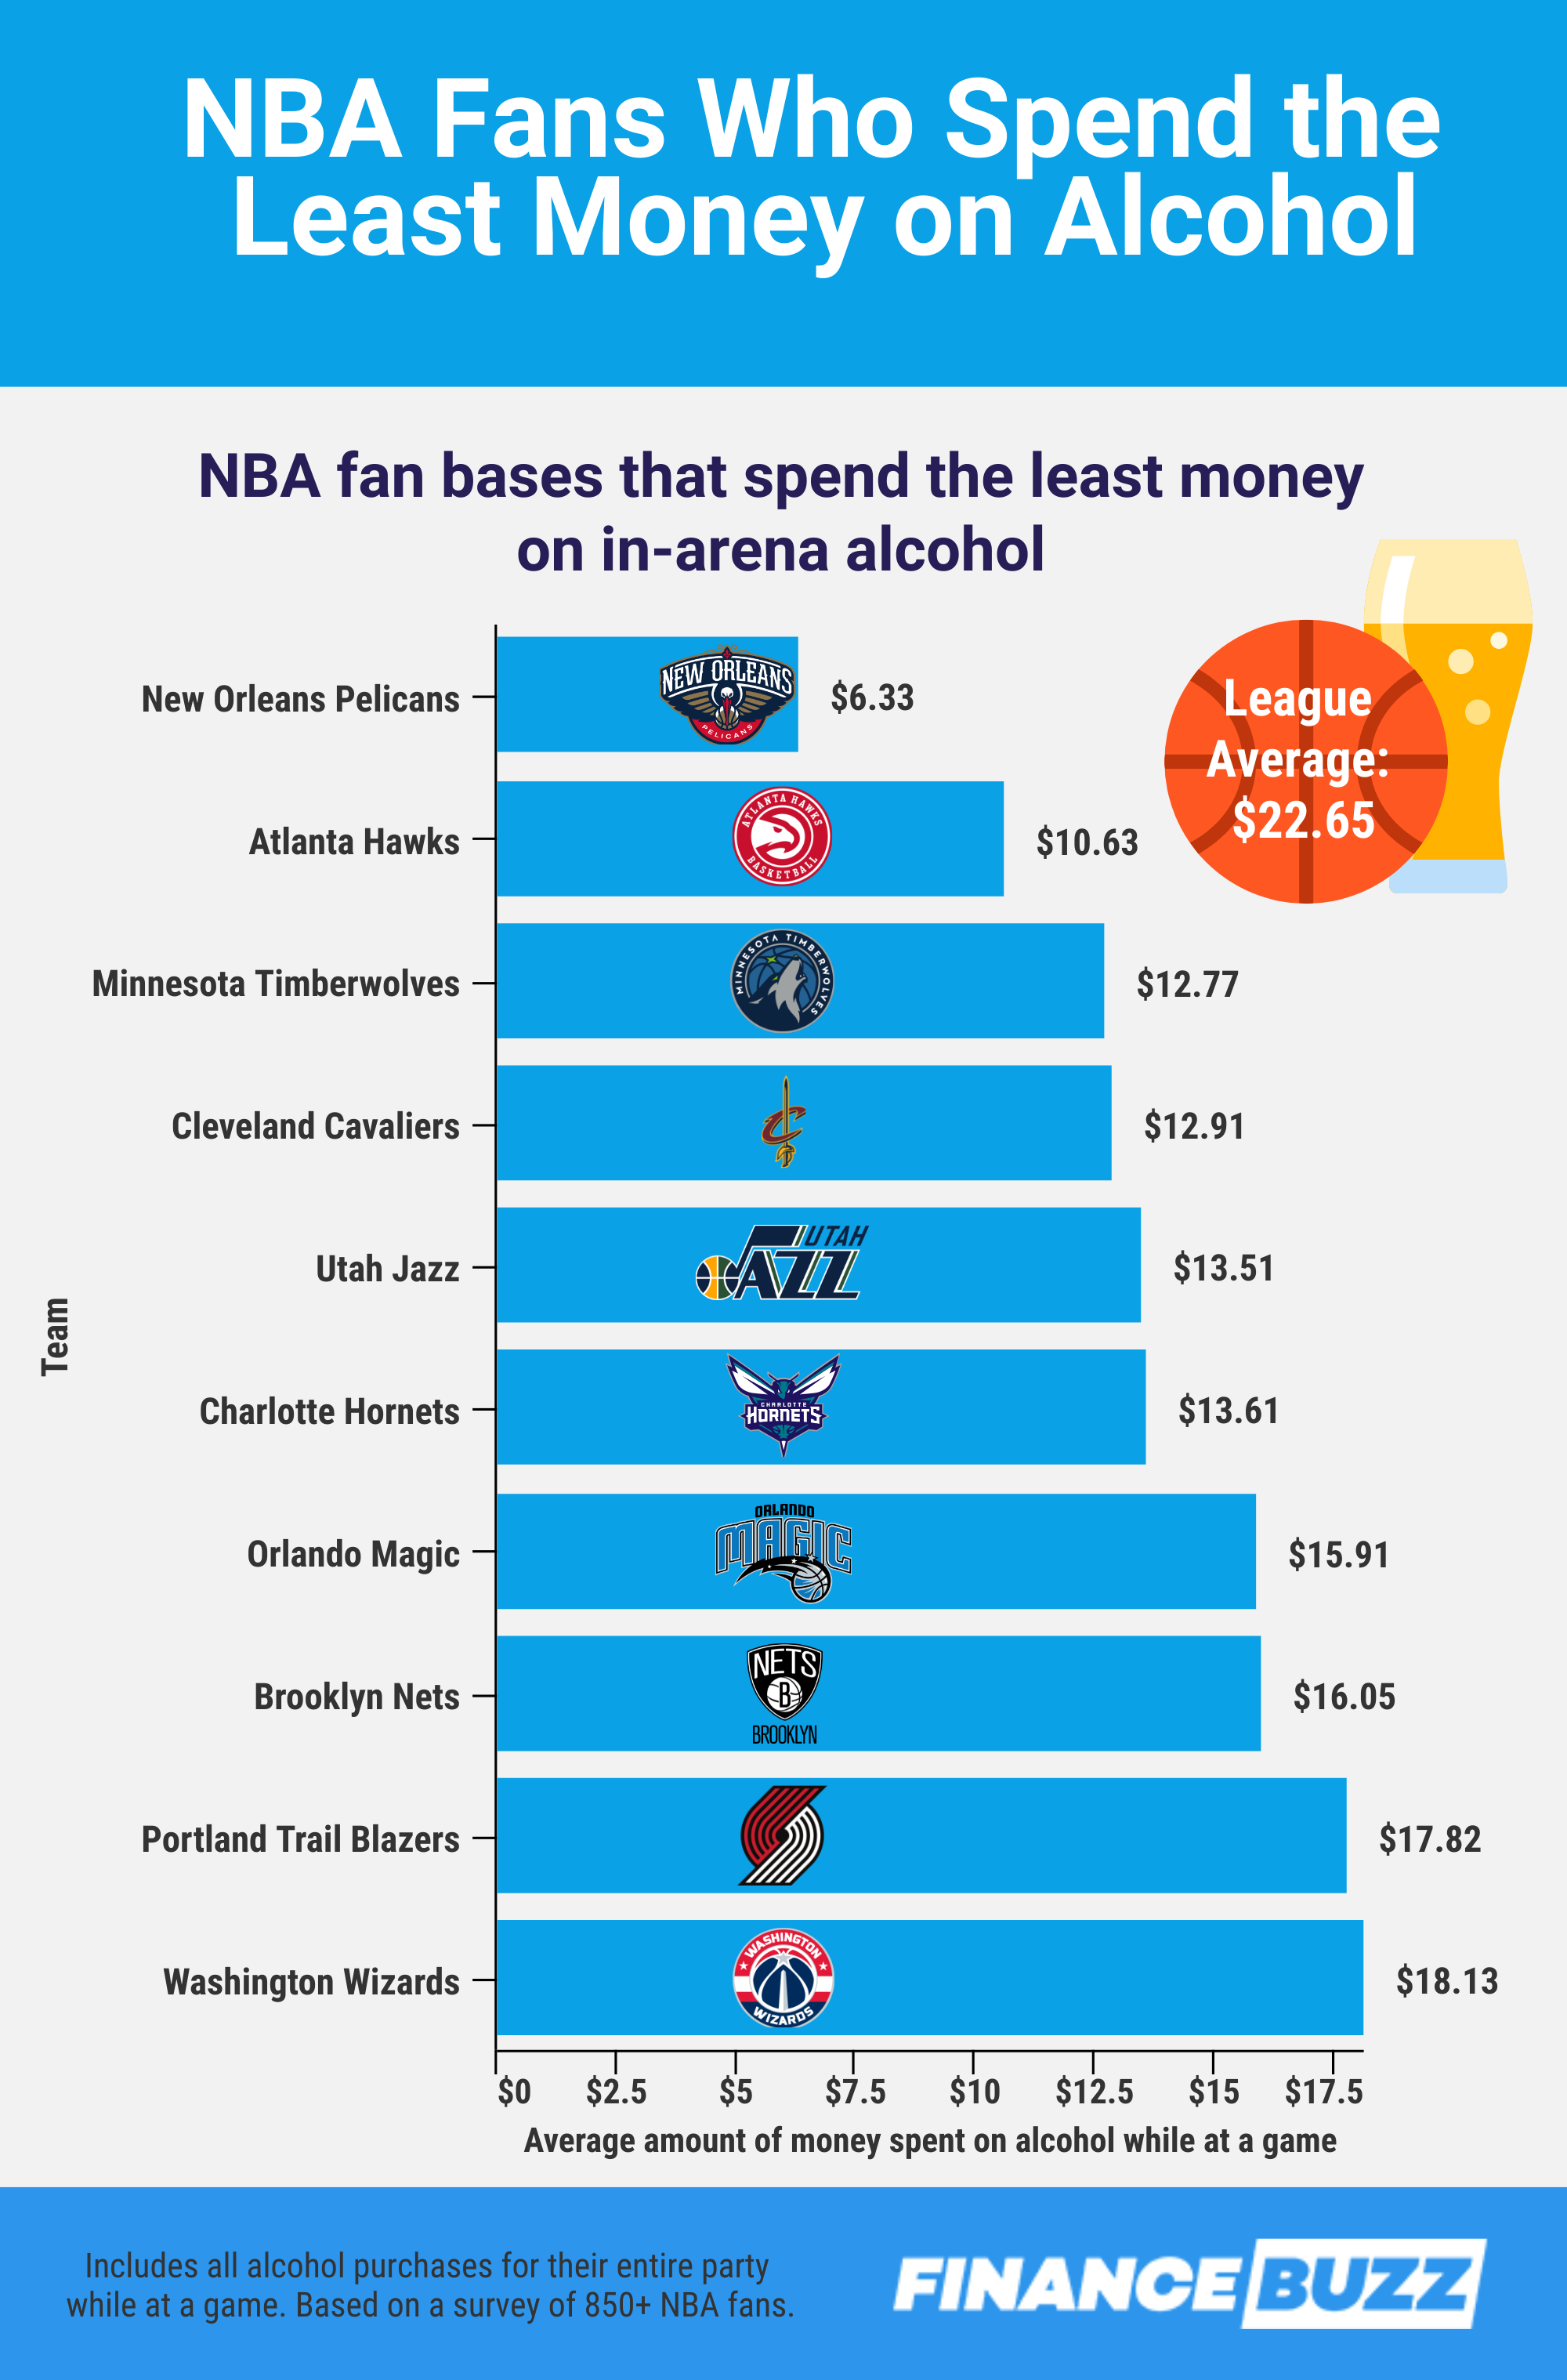 Graphic showing the NBA fan bases that spend the least money on alcohol